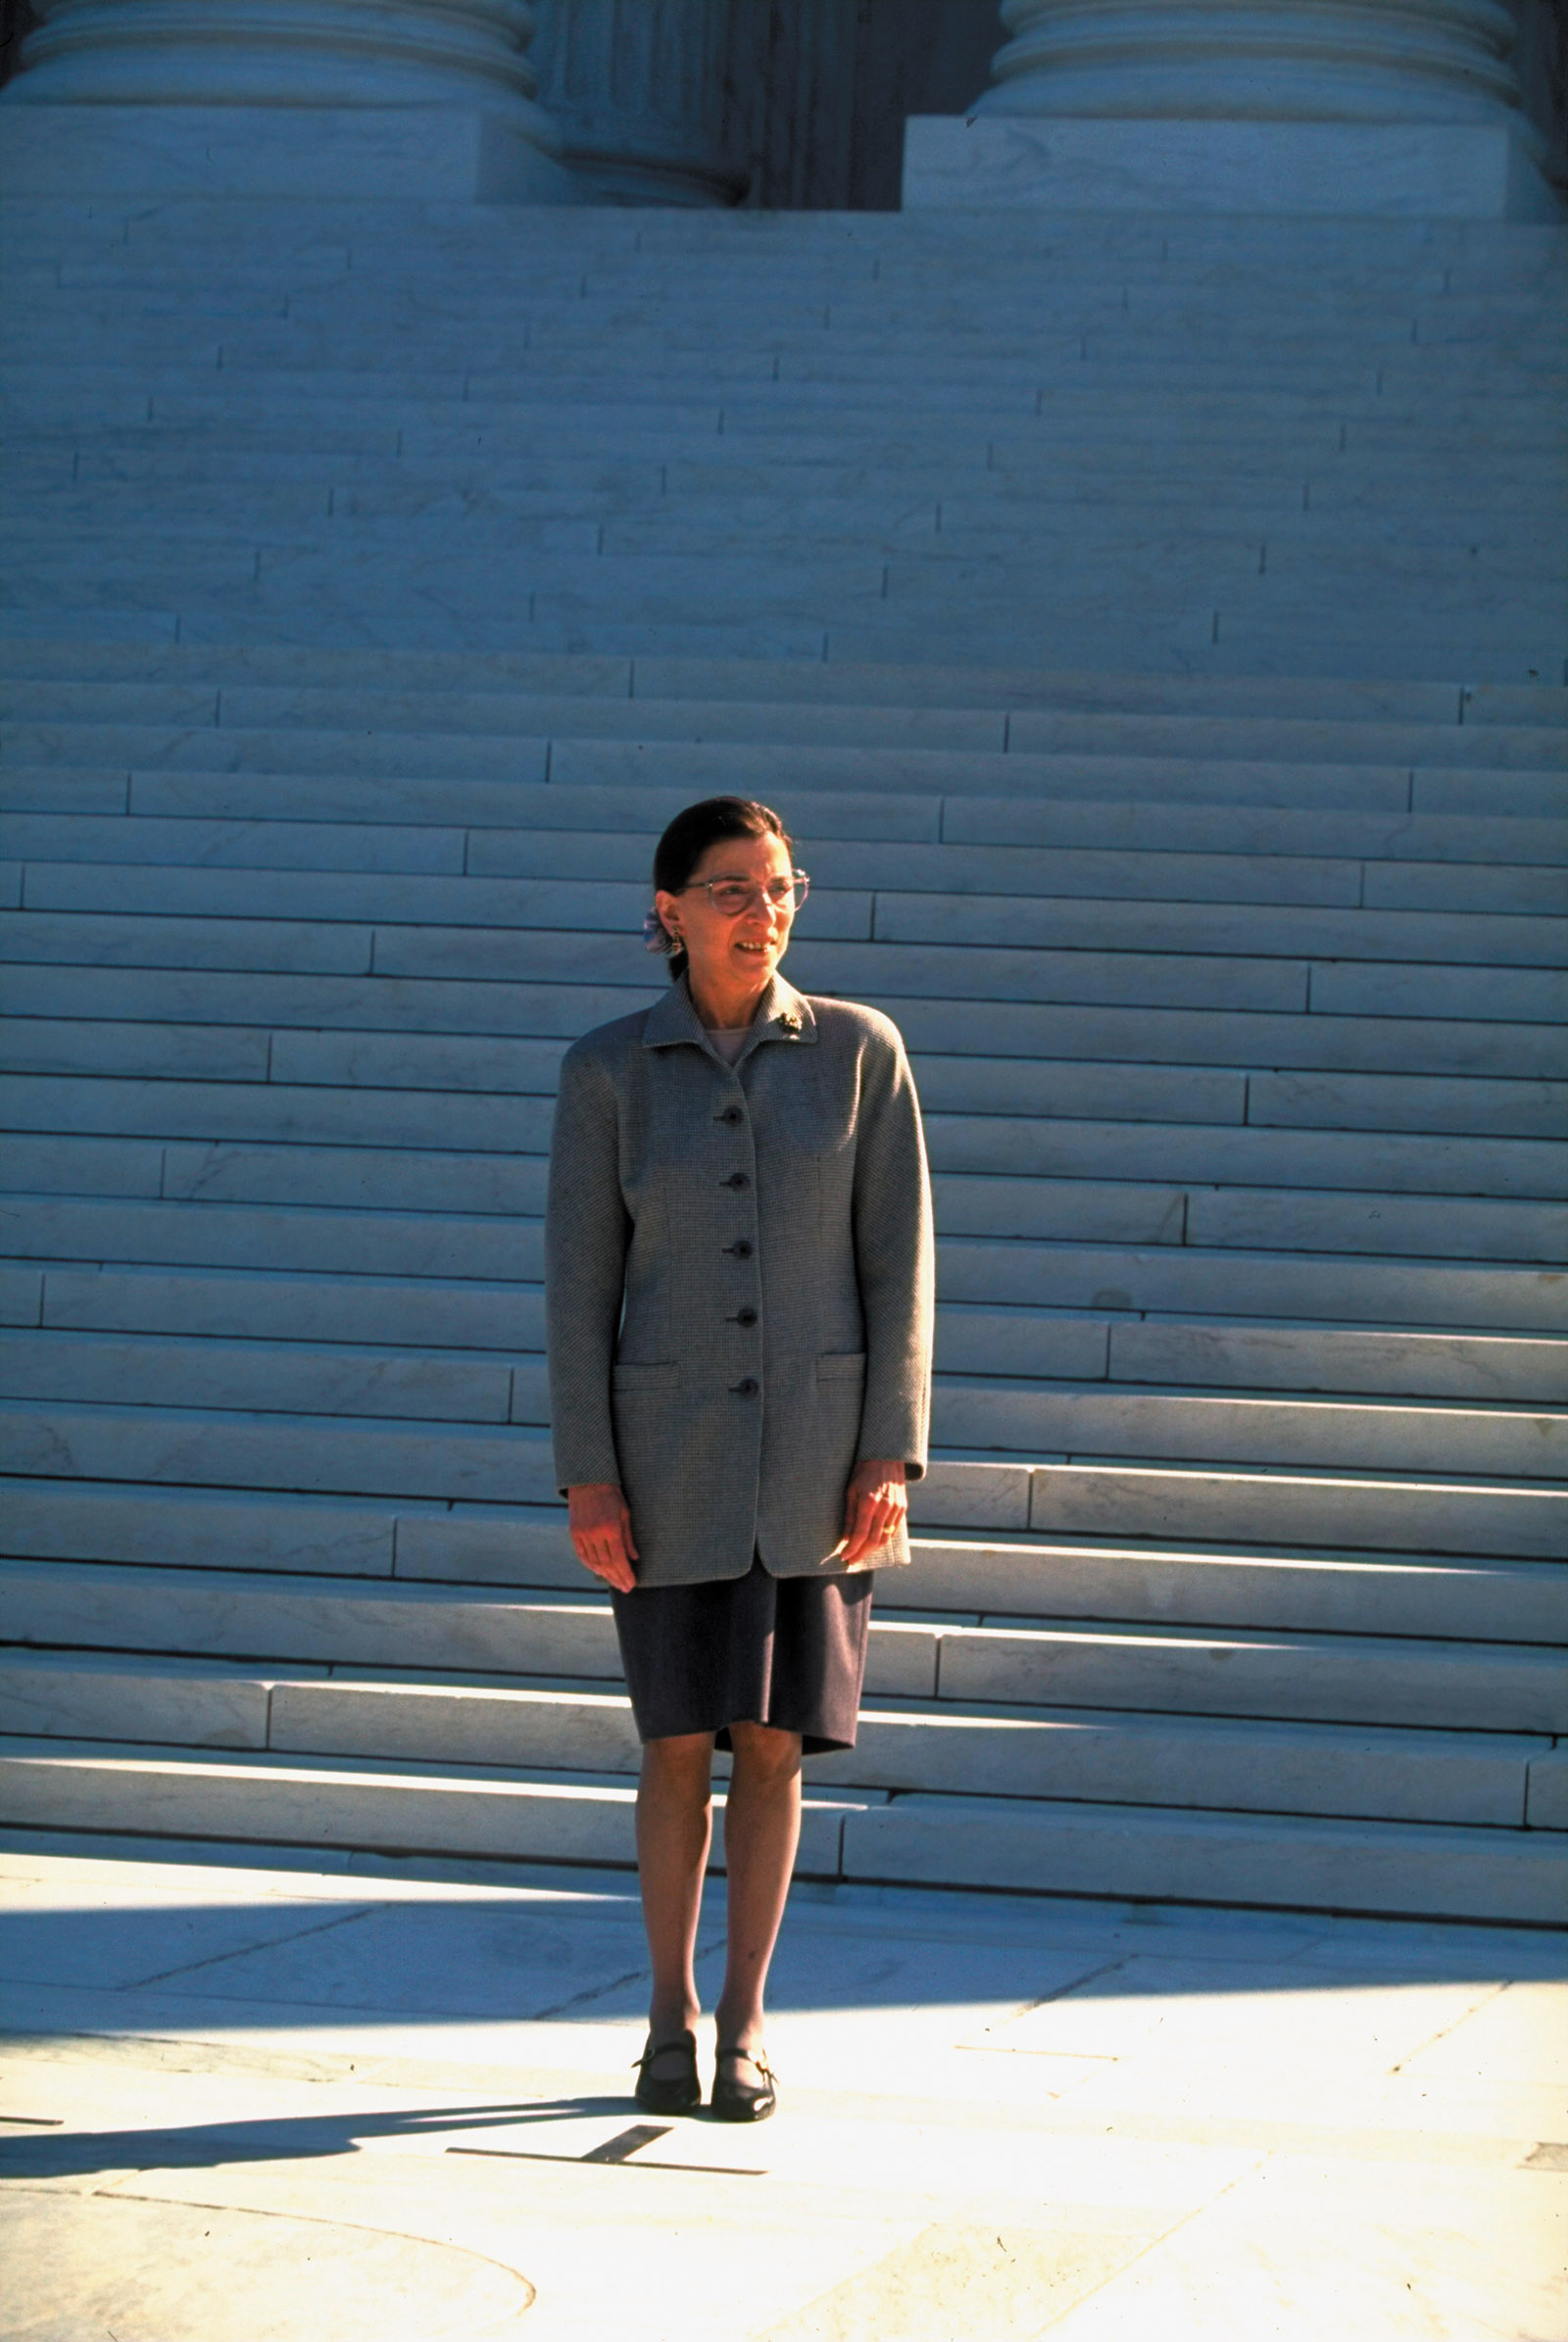 Ruth Bader Ginsburg at the Supreme Court shortly after being sworn in, Washington, D.C., August 1993